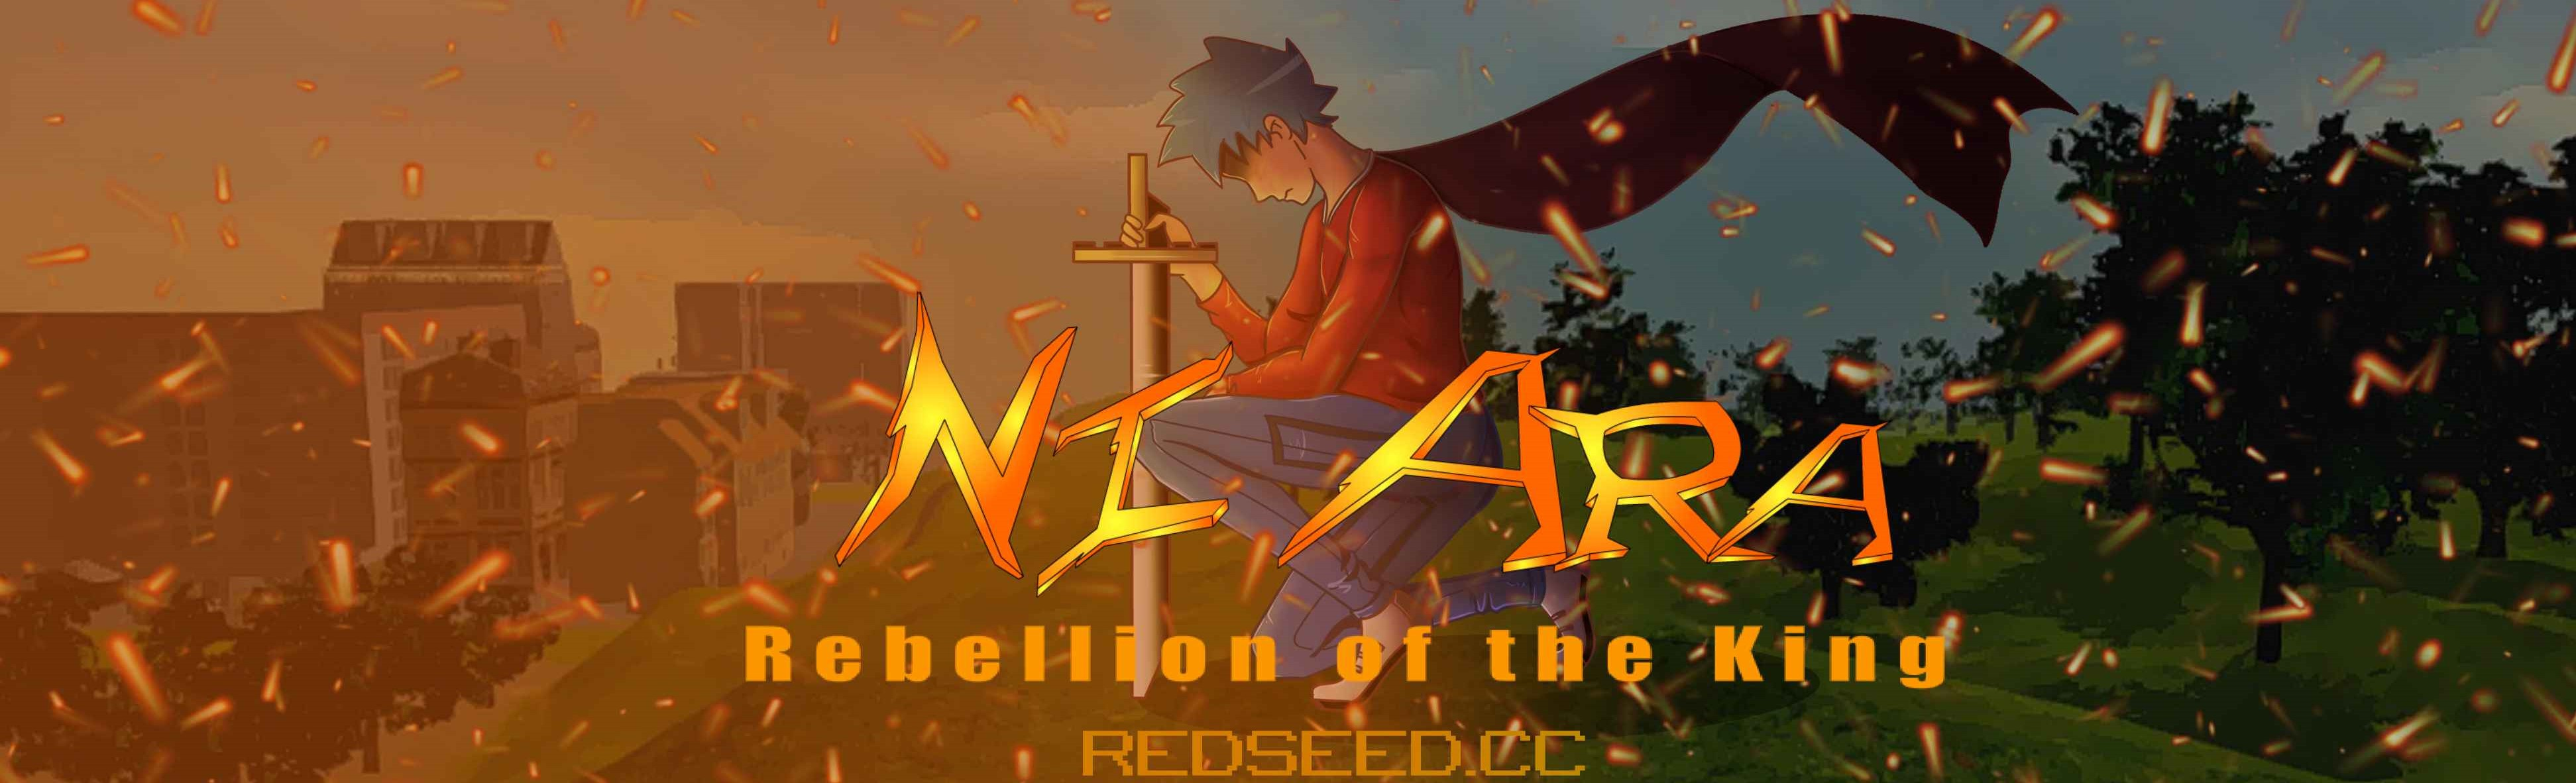 Niara: Rebellion Of the King Visual Novel RPG